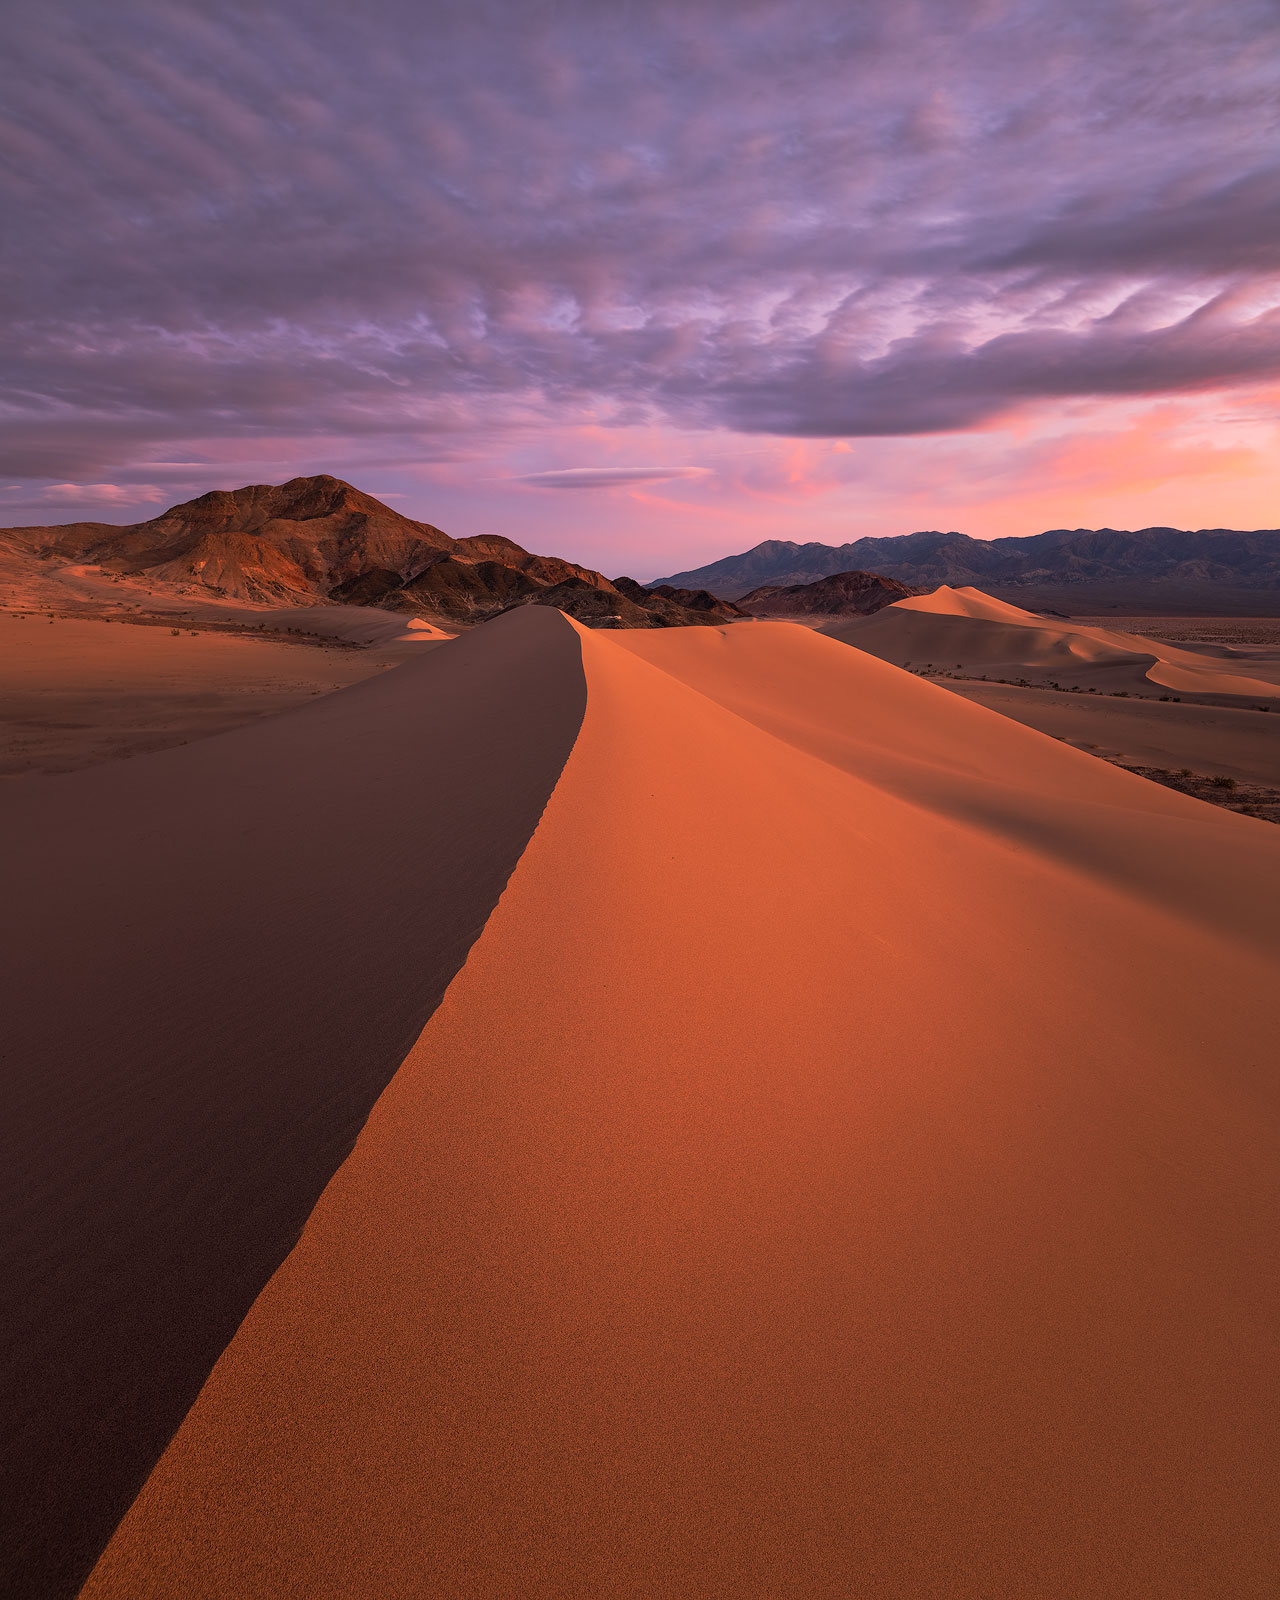 A spectacular winter sunset from the Ibex Dunes in Death Valley, California.